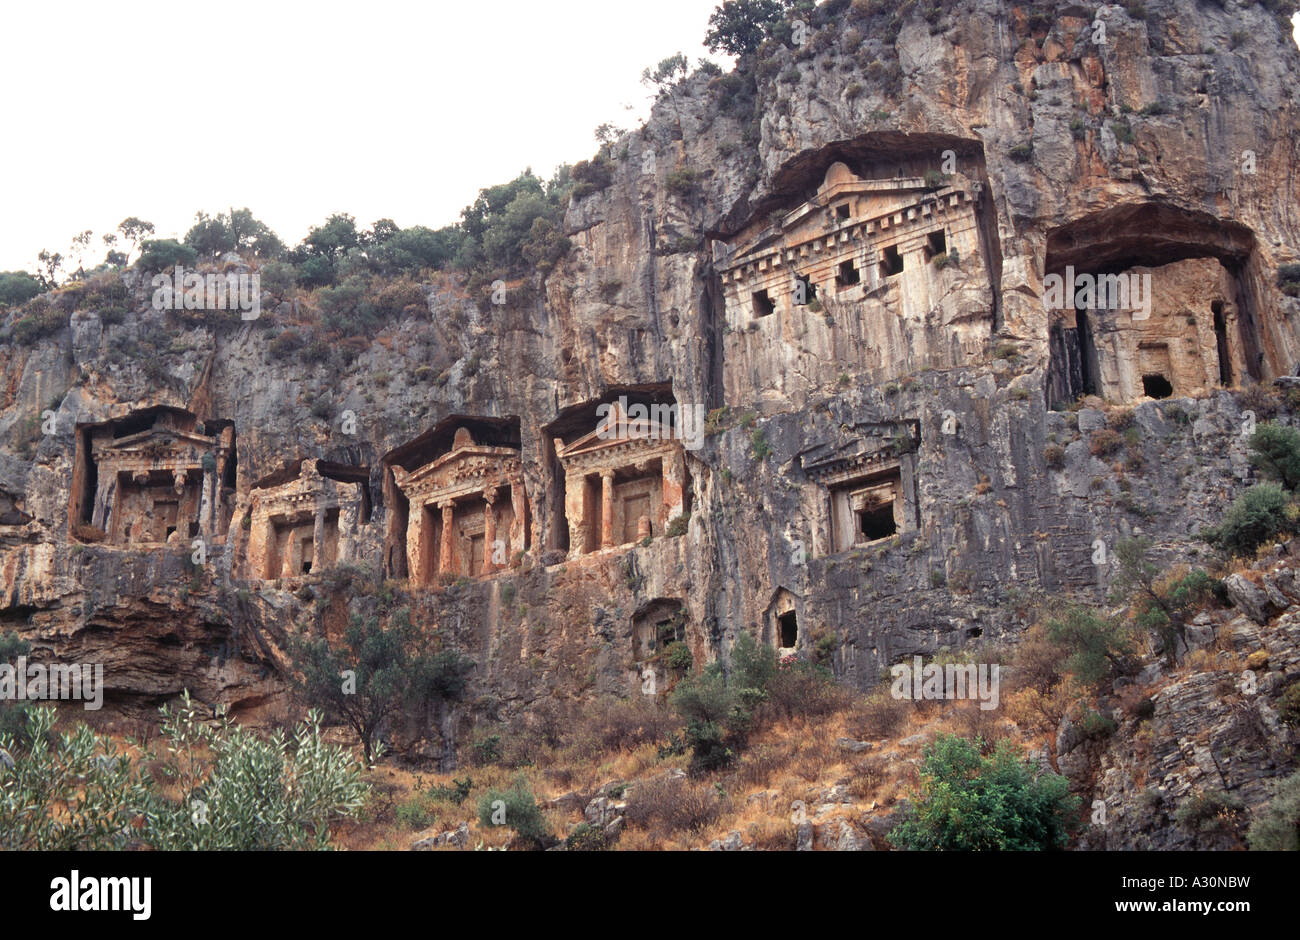 Lycian rock tombs in the historical city of Kaunos in ...